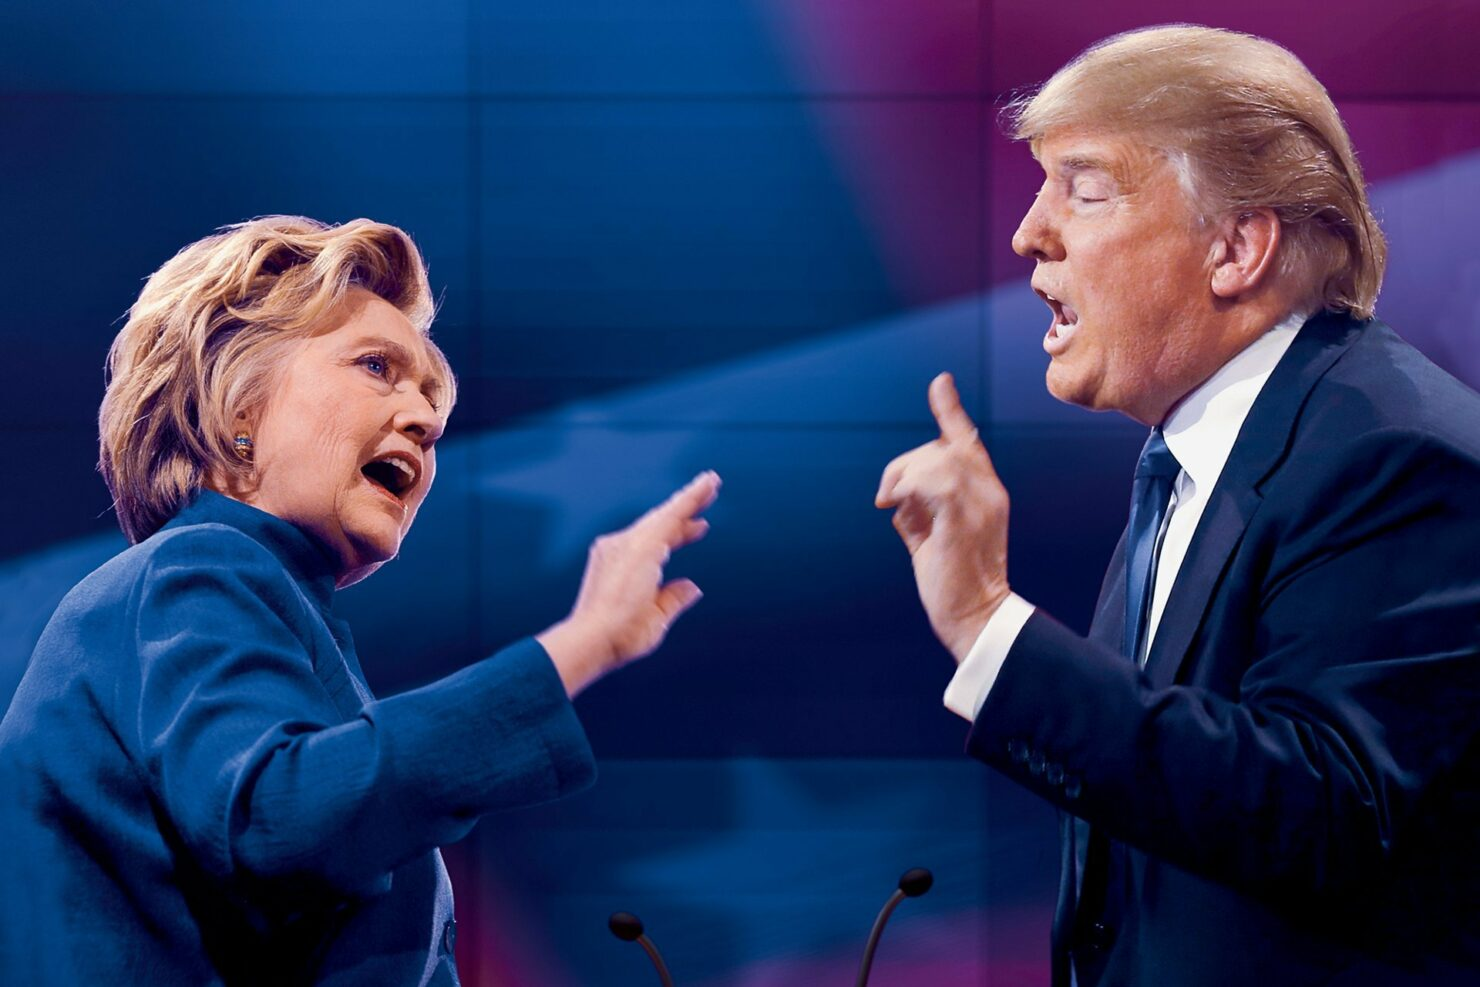 russia watch US election 2016 online